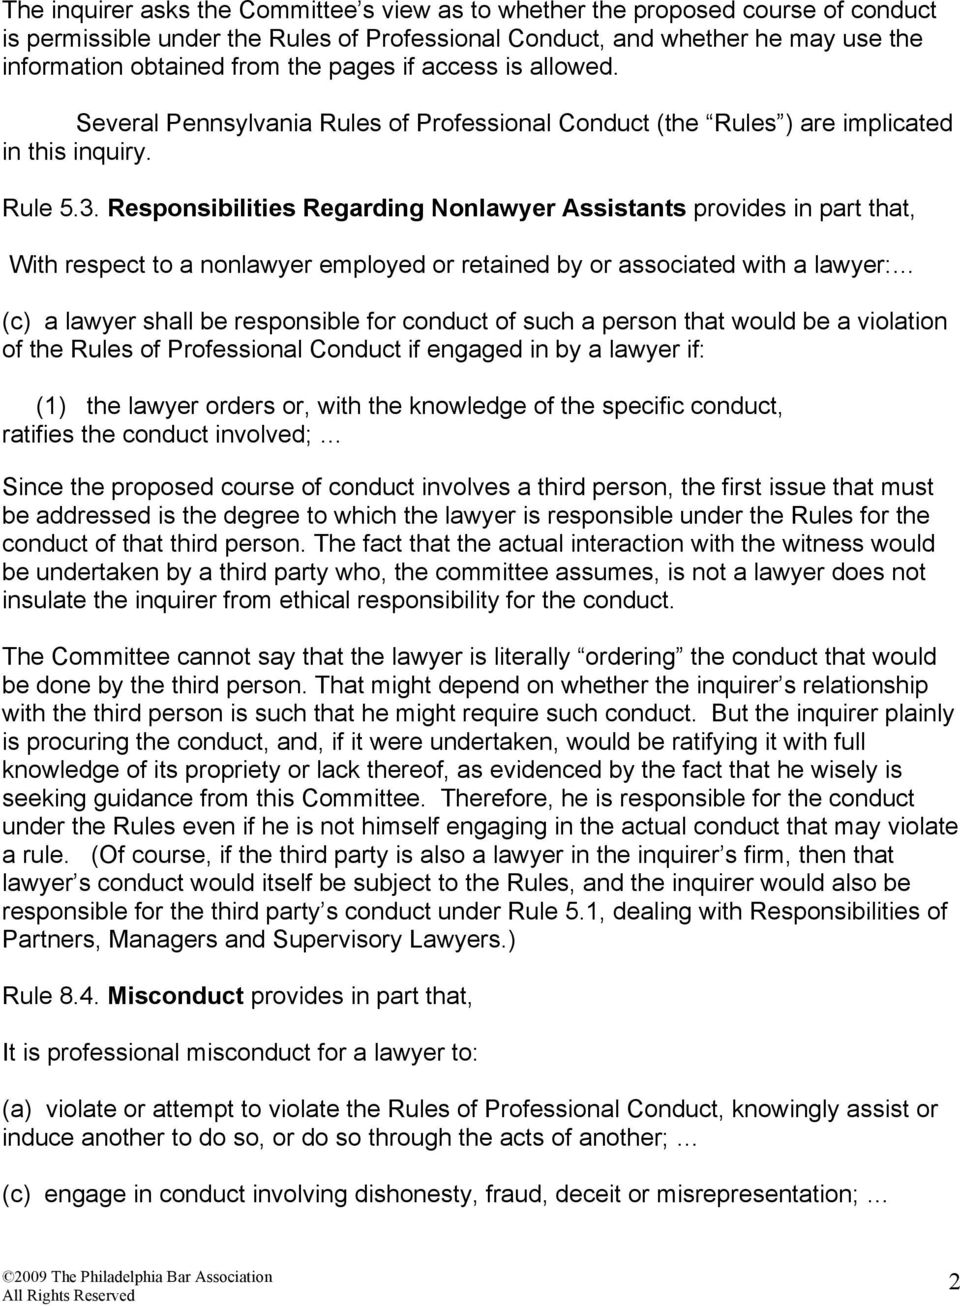 Responsibilities Regarding Nonlawyer Assistants provides in part that, With respect to a nonlawyer employed or retained by or associated with a lawyer: (c) a lawyer shall be responsible for conduct